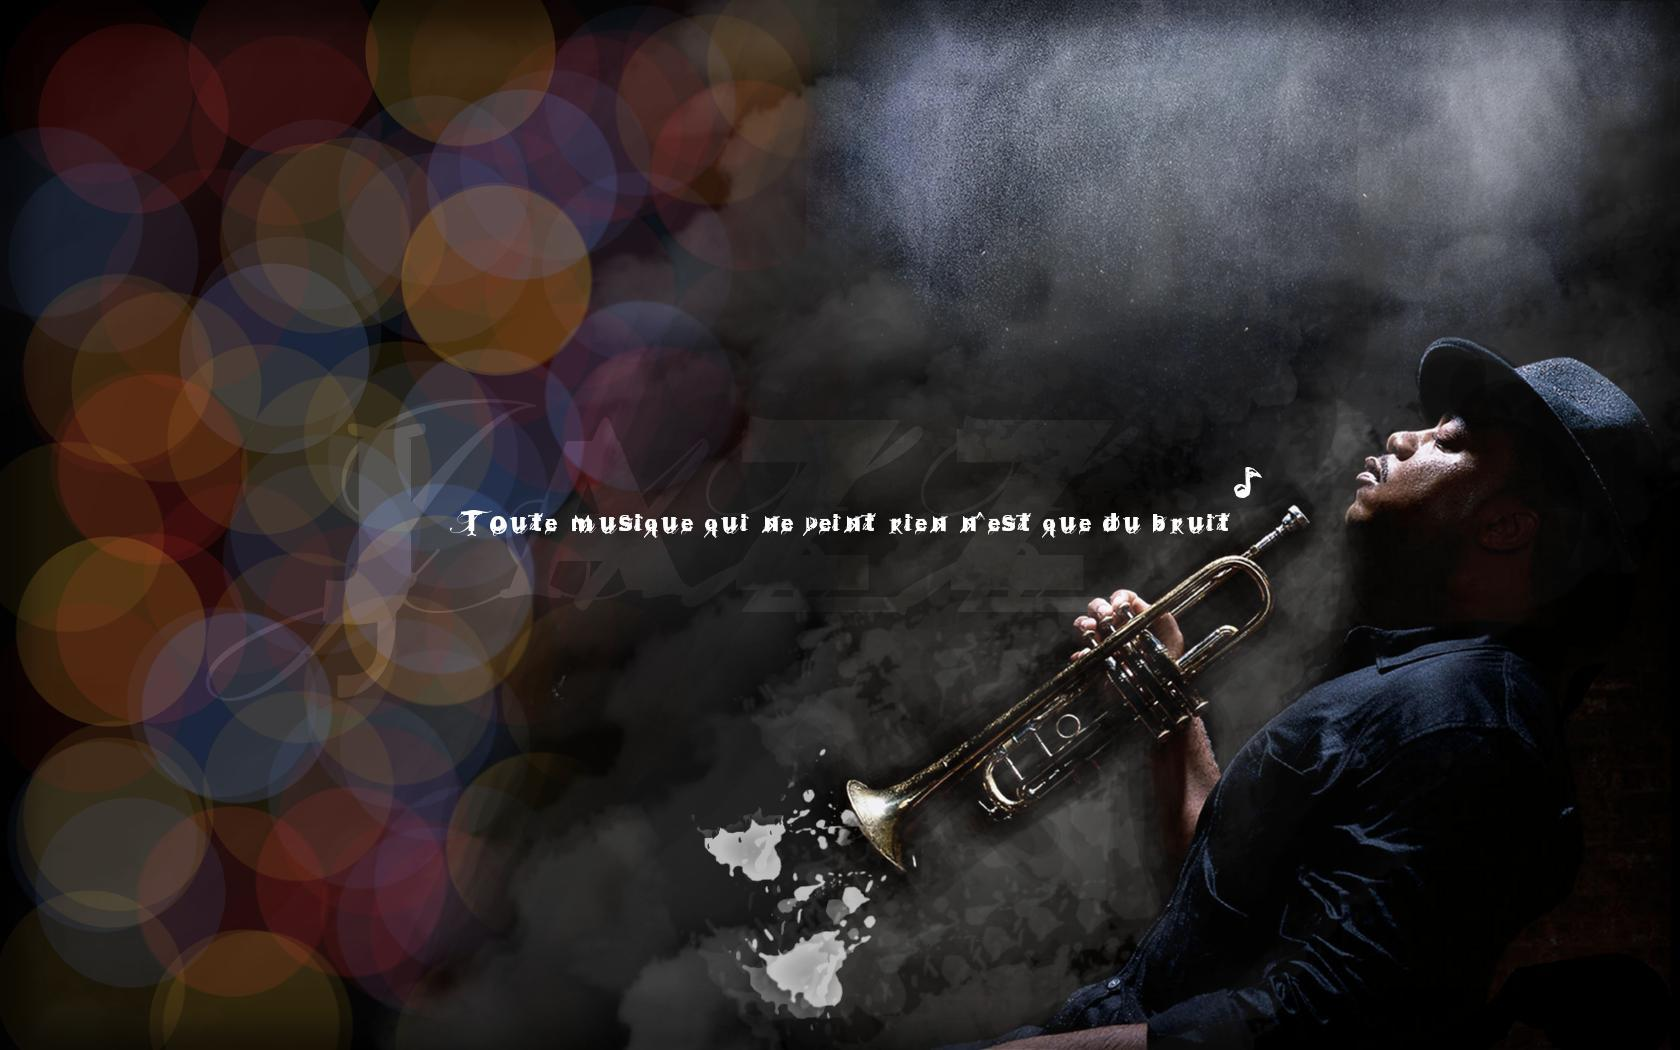 Download Wallpaper JAZZ. on CrystalXP.net - Wallpapers